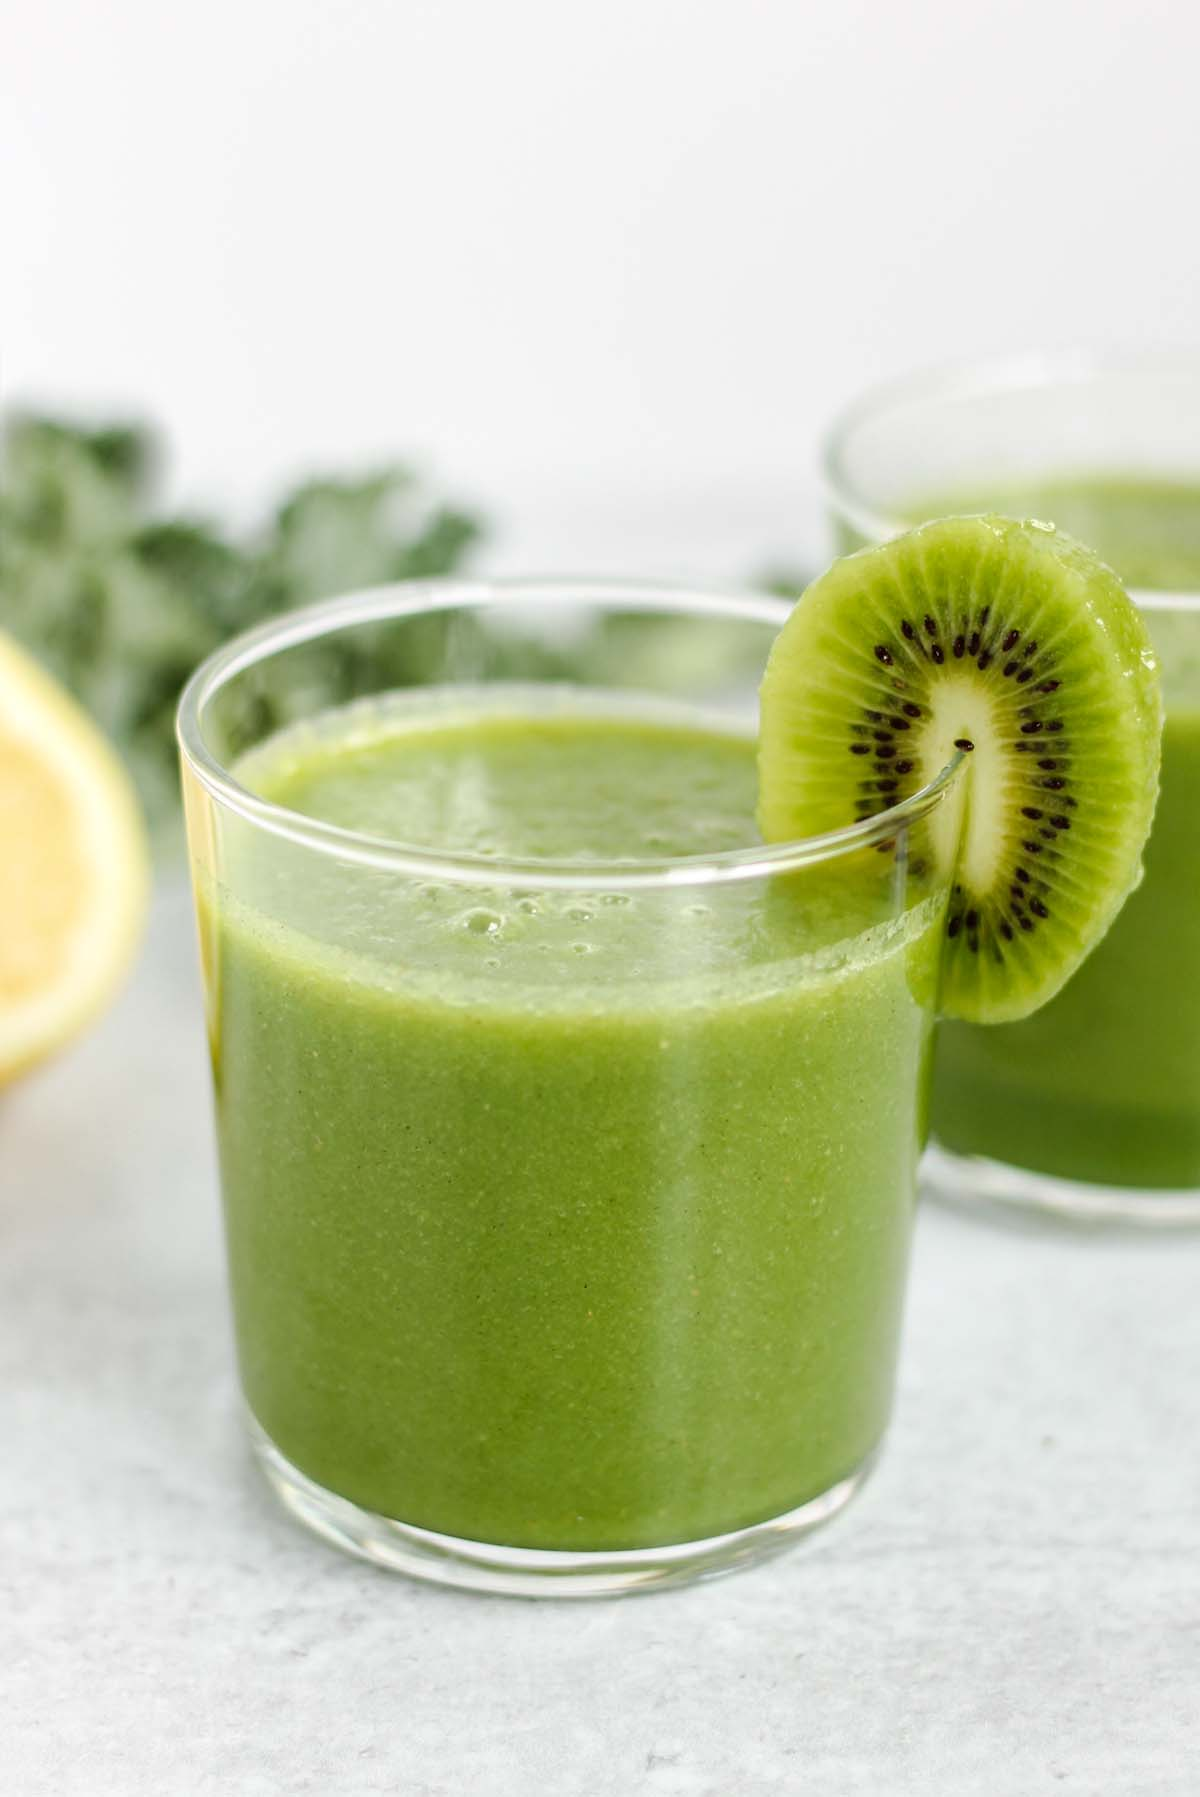 Small glass filled with kale apple smoothie with a kiwi slice on the rim of the glass.